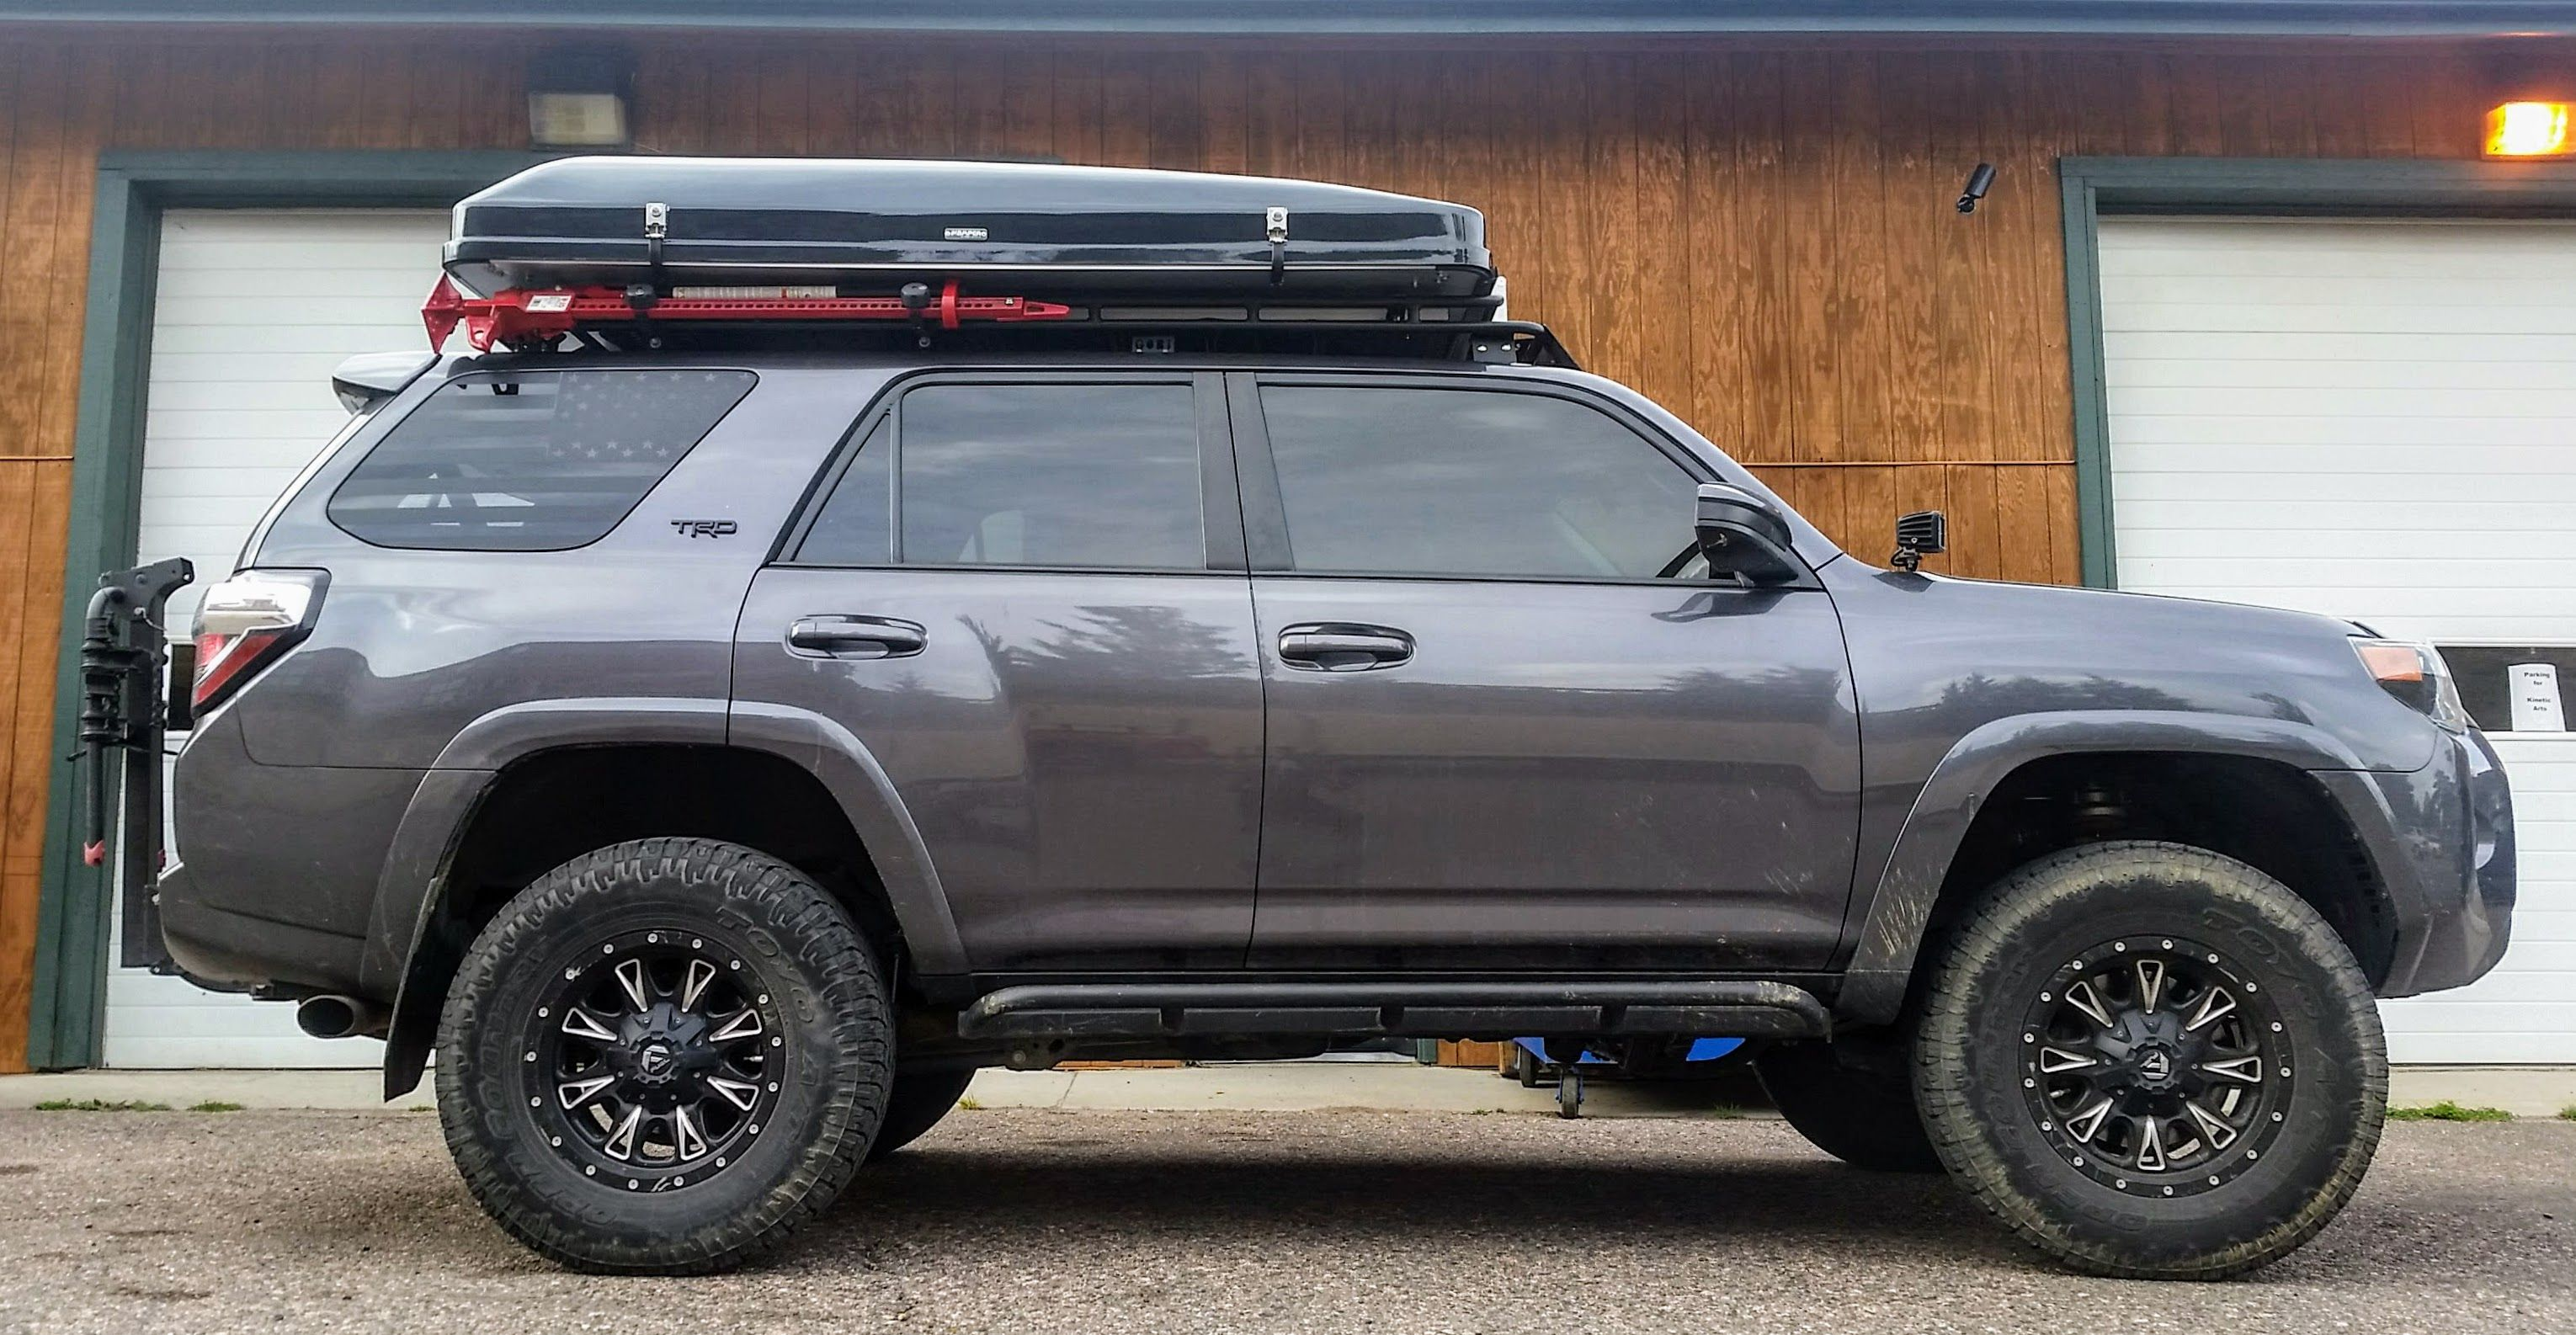 Toyota 4runner Gobi Rack And Ikamper Skycamp Rooftop Tent Look Like They Are Made For Eachother Come Visit Altitude Ind Toyota 4runner 4runner Roof Top Tent